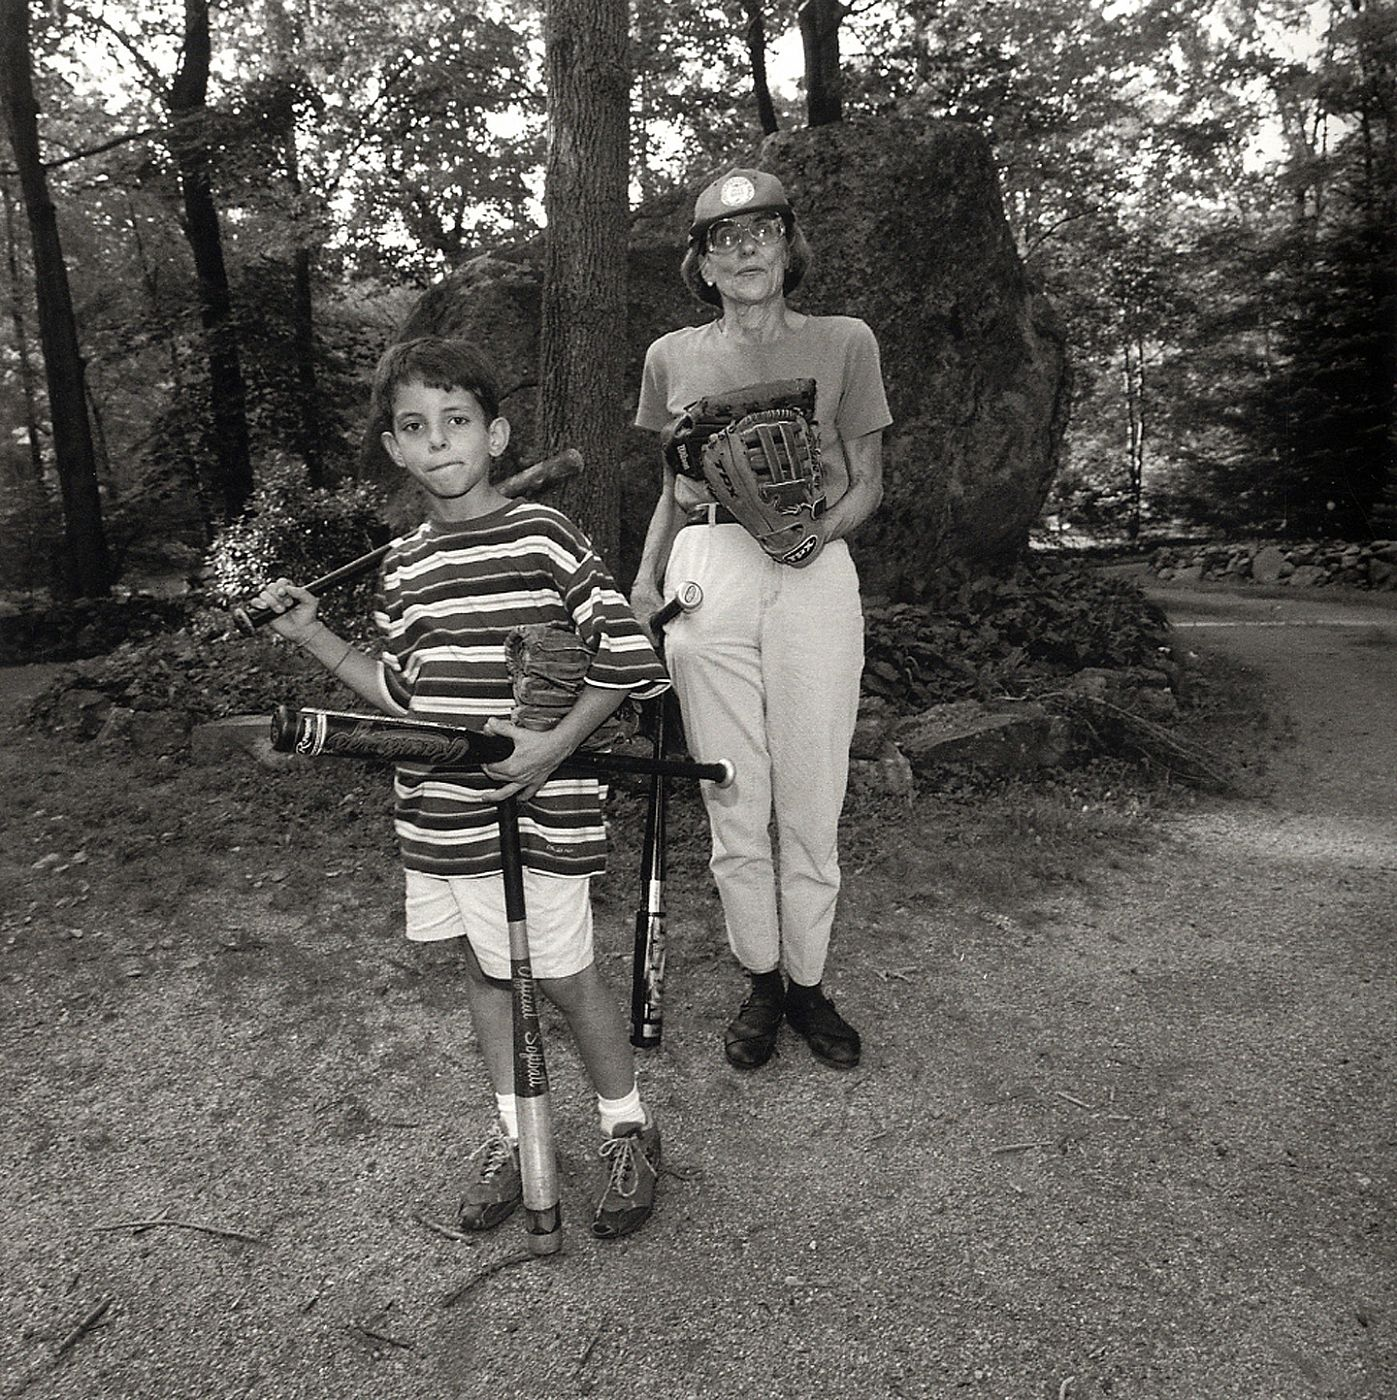 Lee Friedlander: Family in the Picture 1958-2013 [SIGNED]